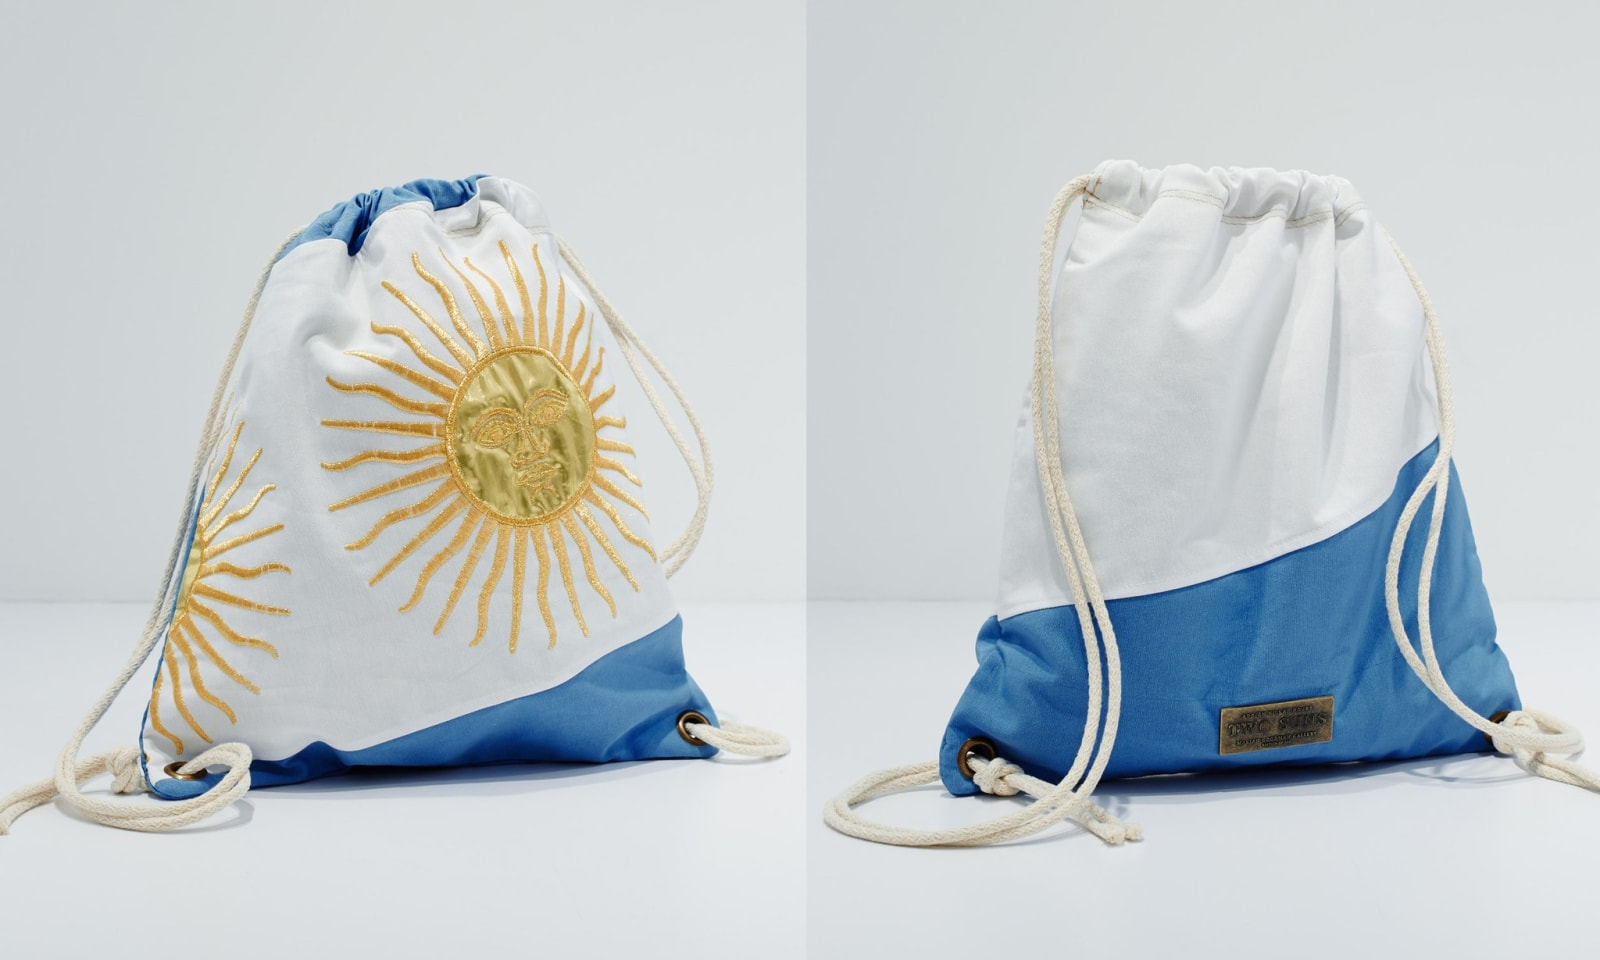 Blue and white drawstring bag with embroidered sun design by Adrian Villar Rojas.